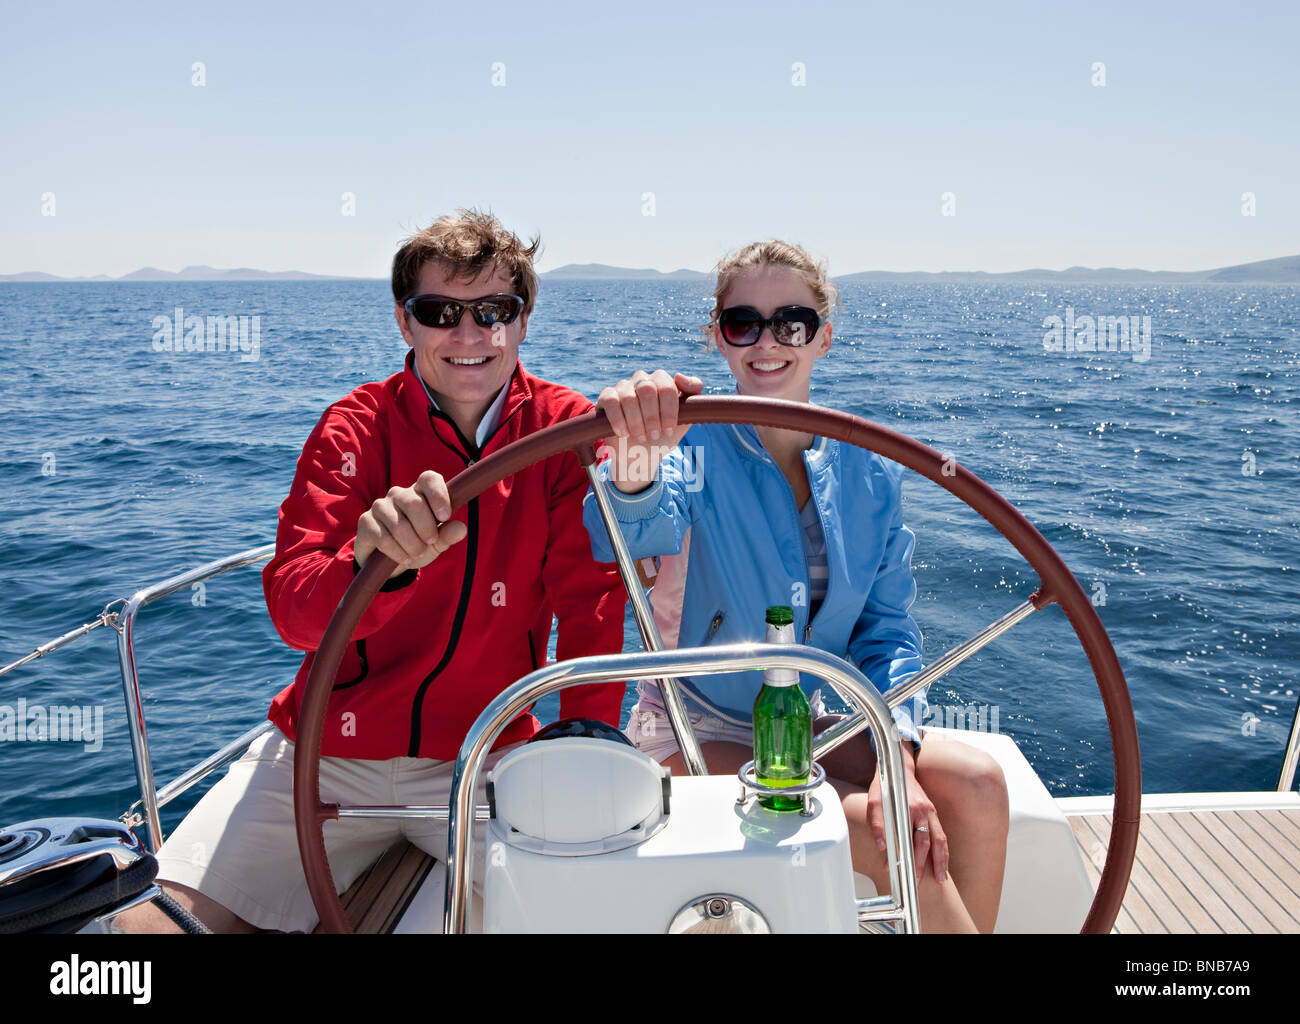 Man and woman steering yacht - Stock Image